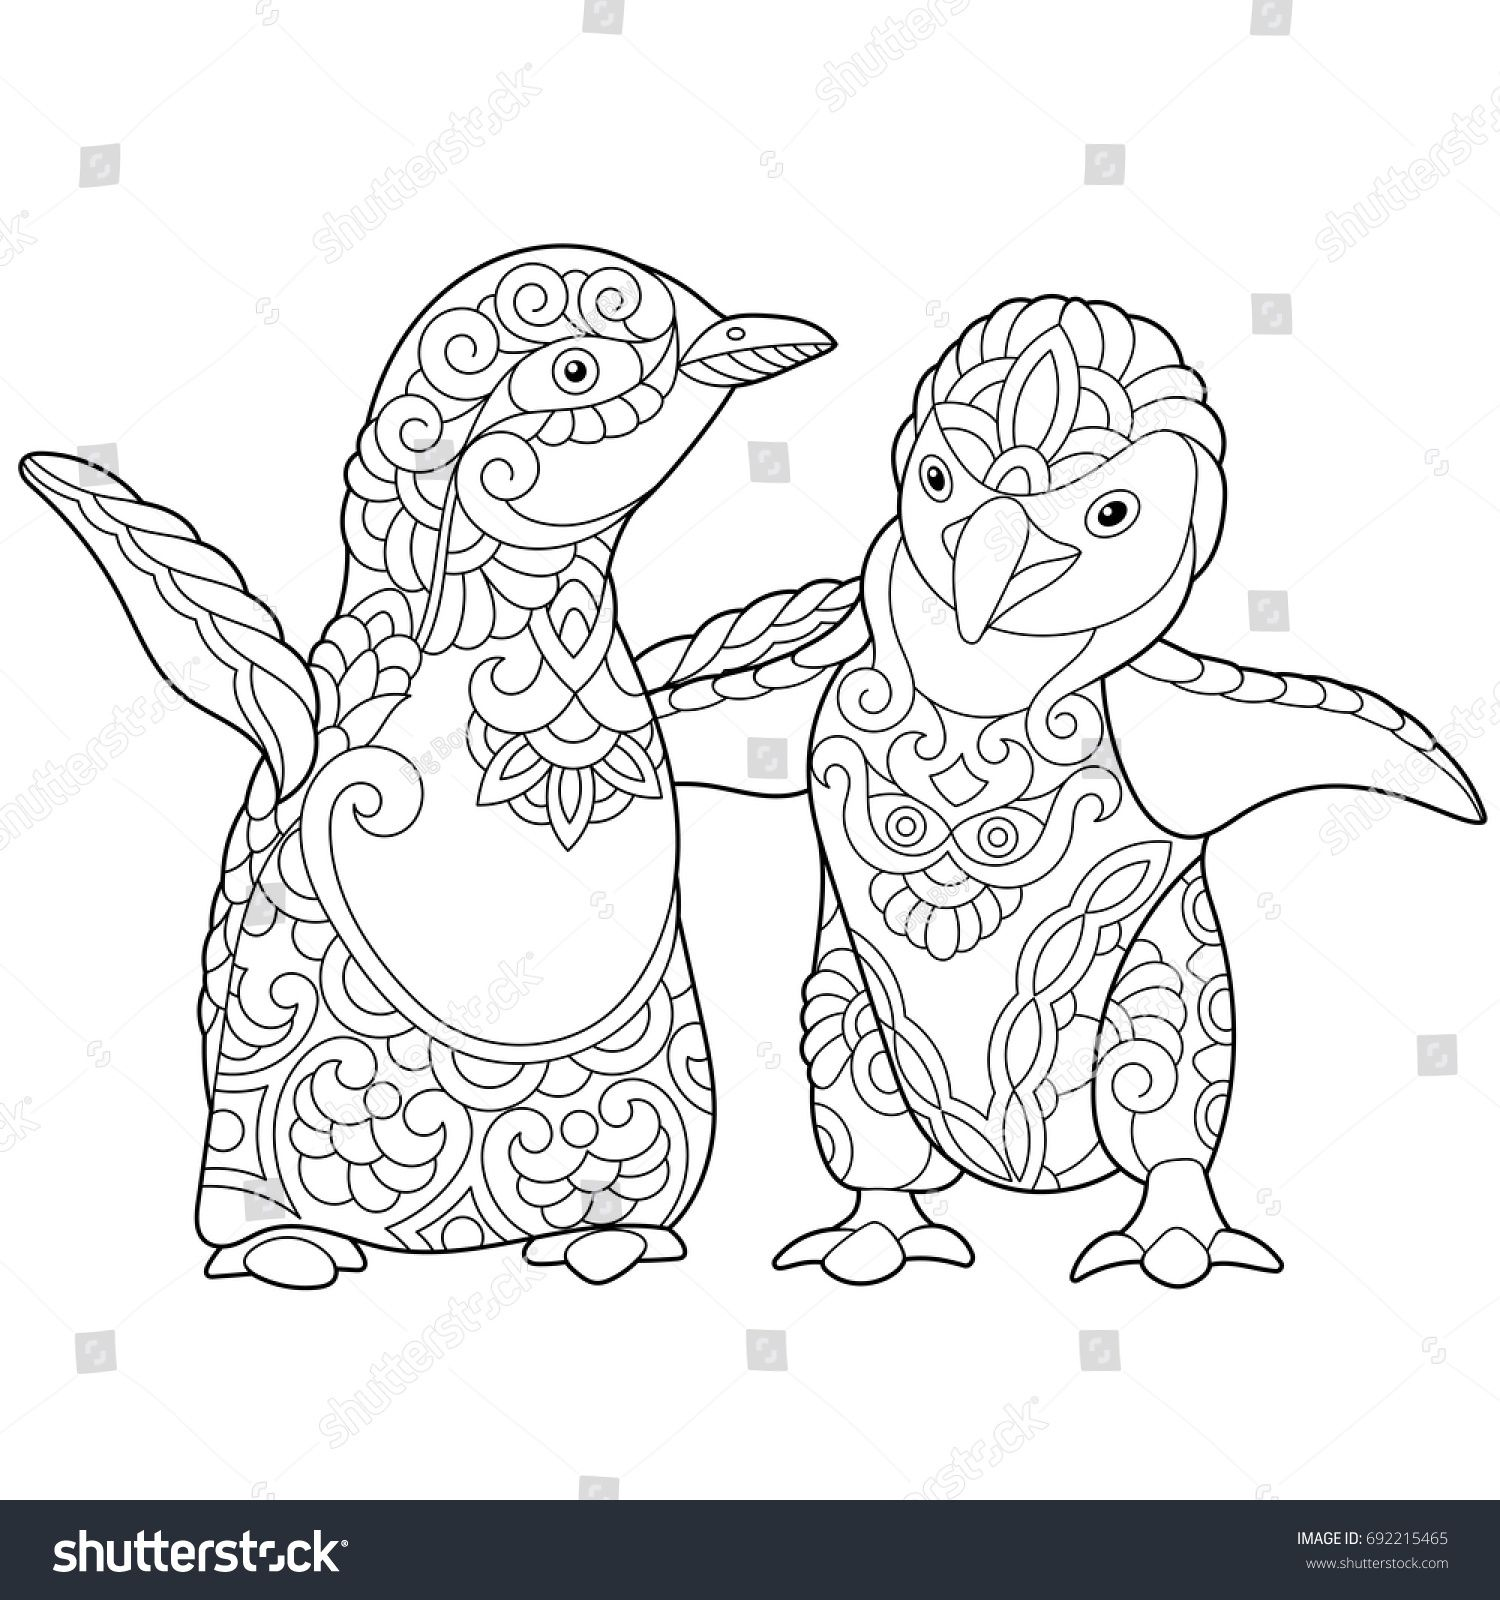 Coloring Page Of Young Emperor Penguins Isolated On White